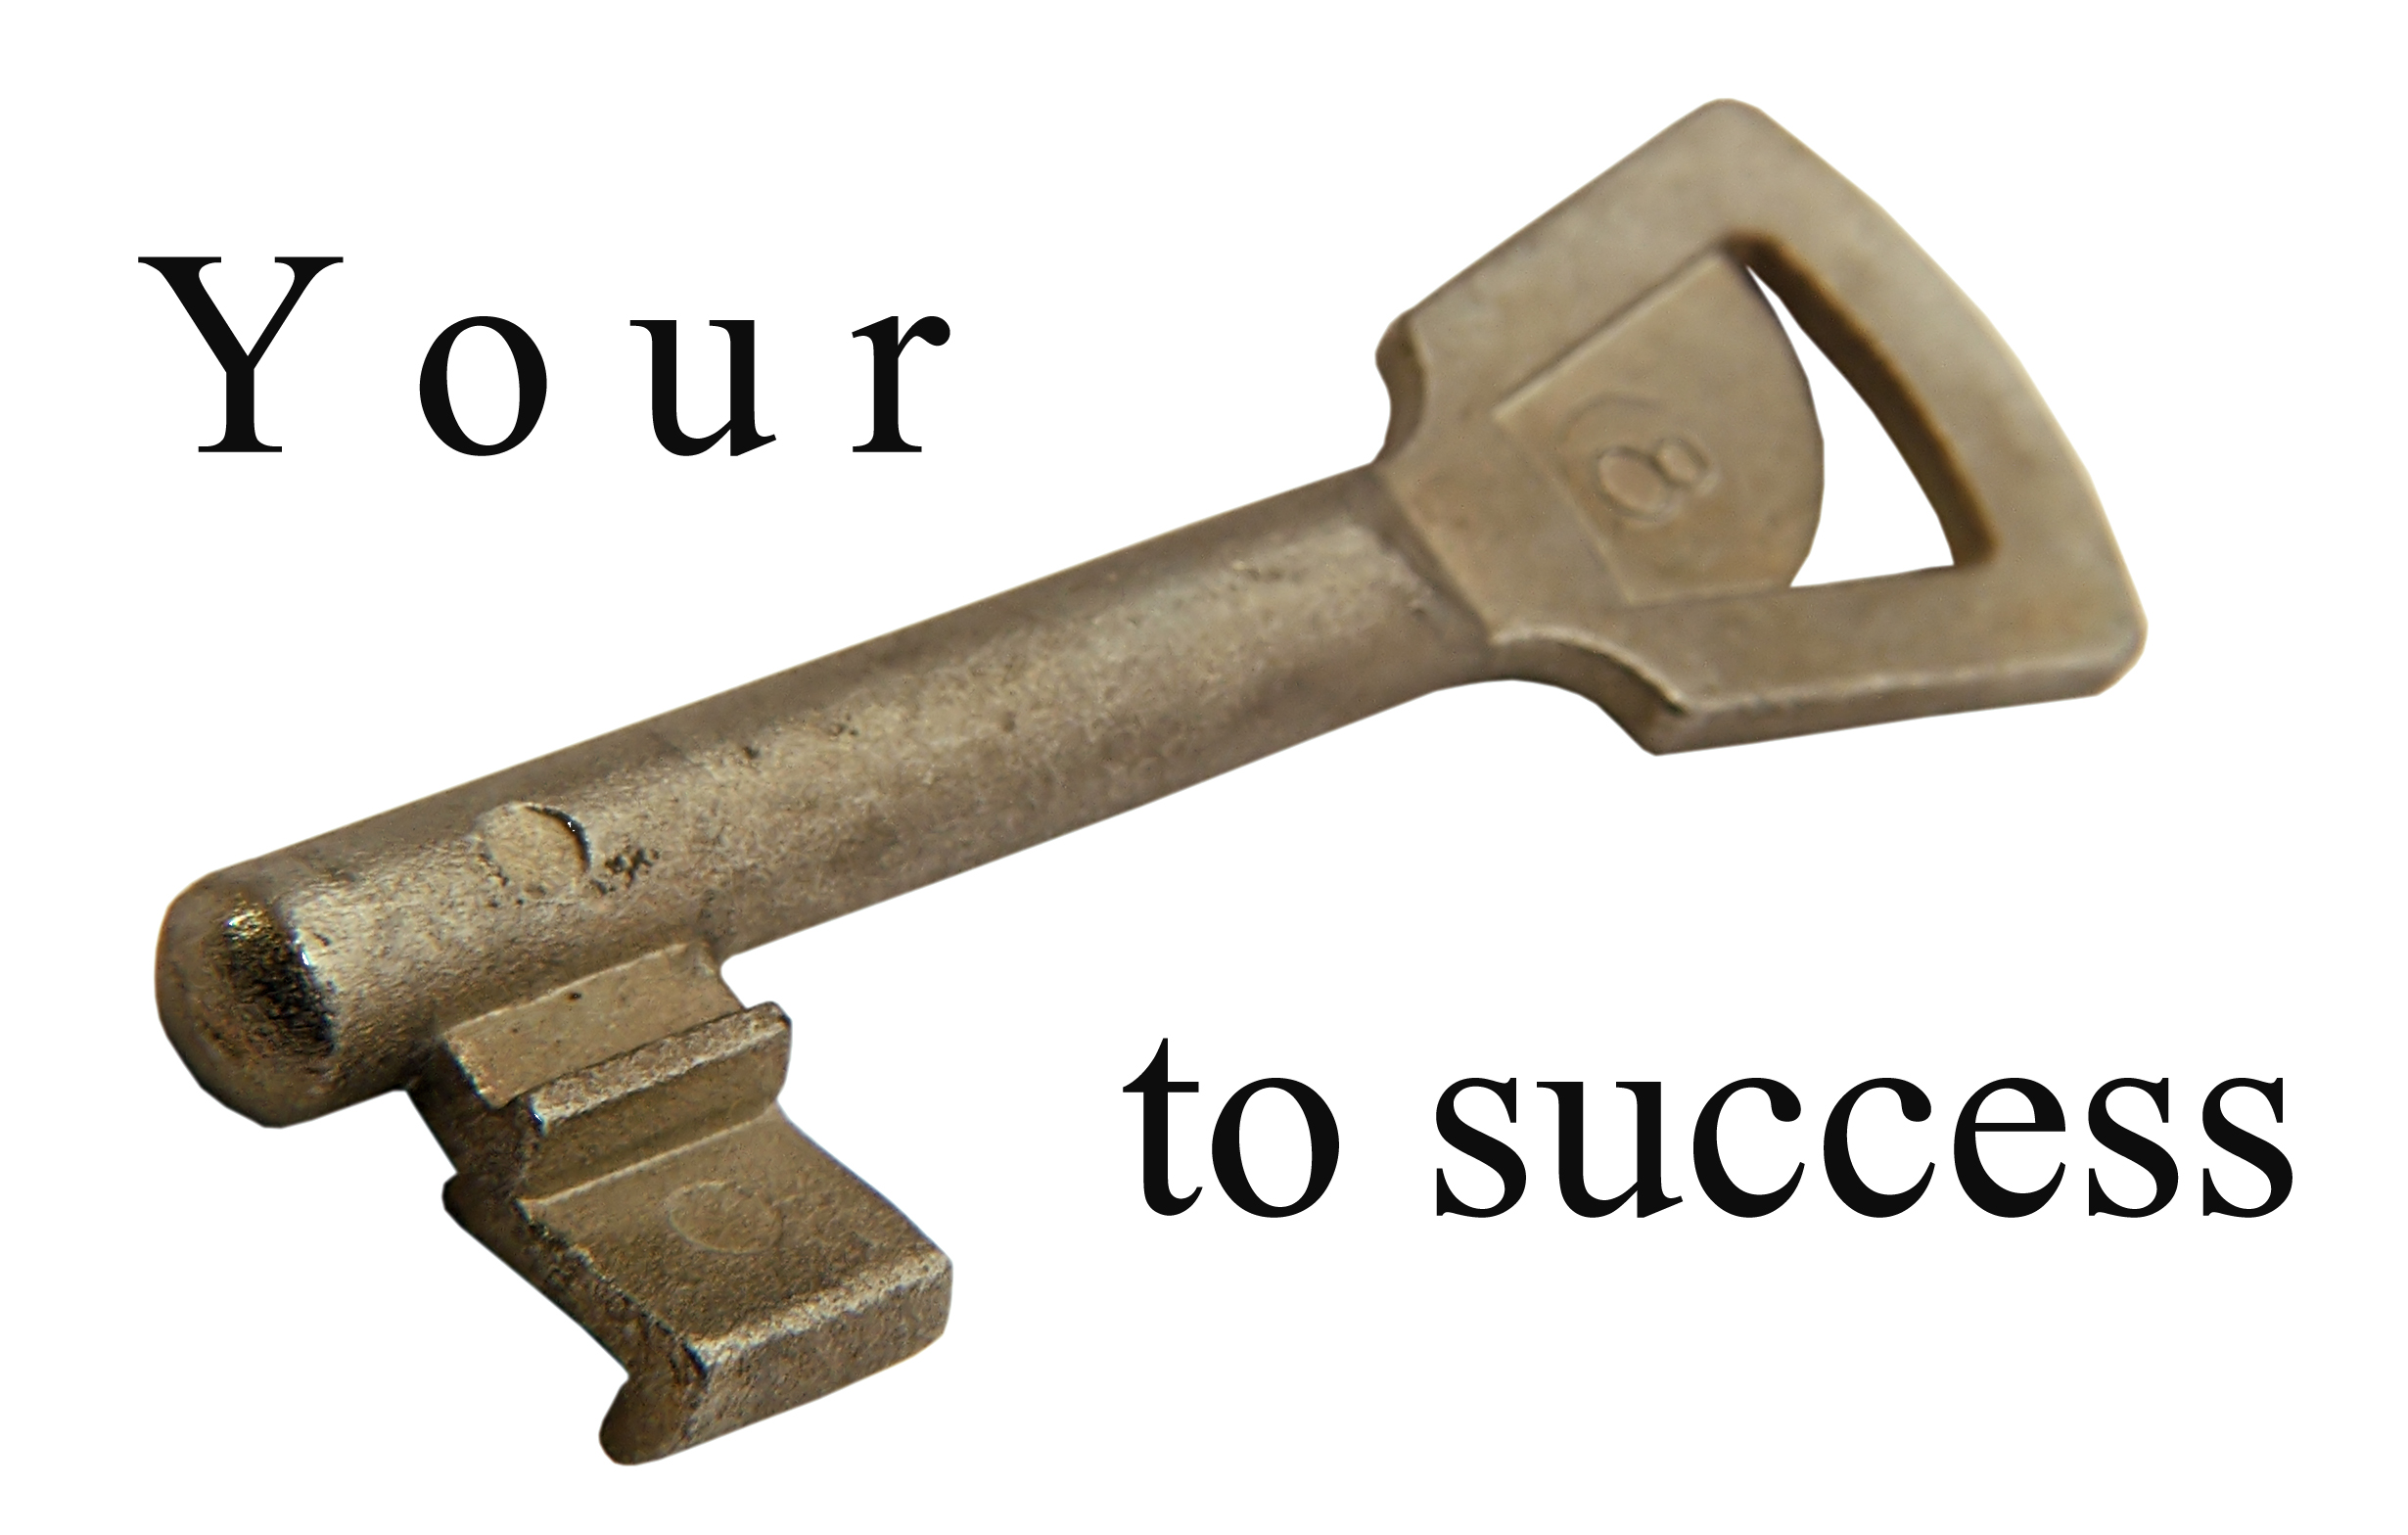 Key to sucess